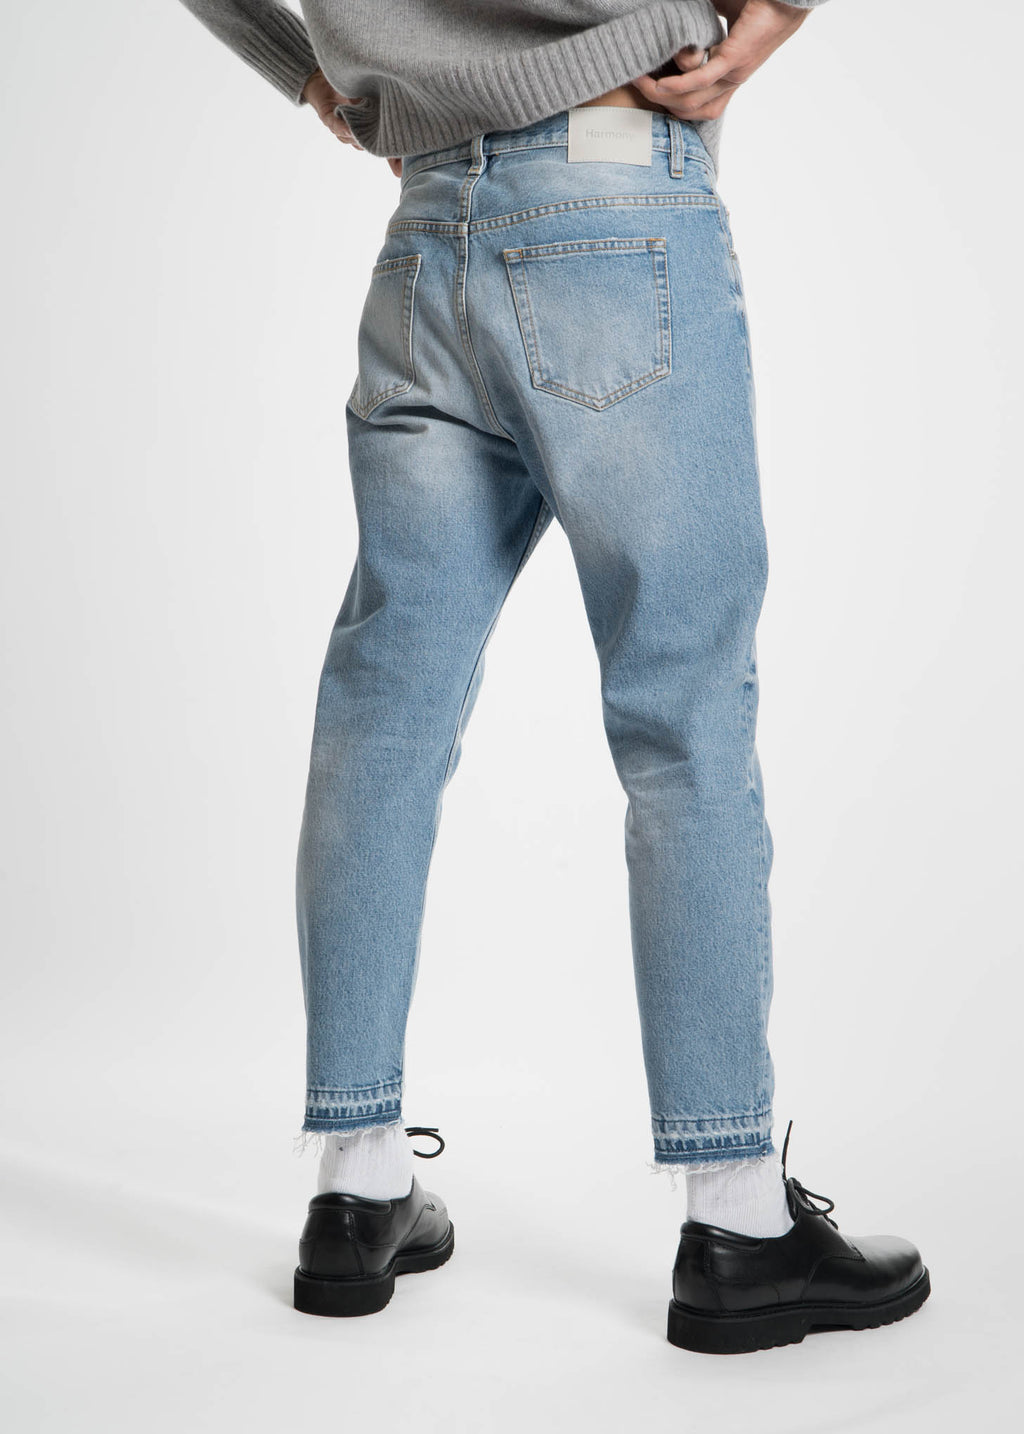 Dorian jeans - Blue Harmony Reliable Discount Marketable Best Store To Get Online Free Shipping The Cheapest Sale Exclusive ExeLbVl